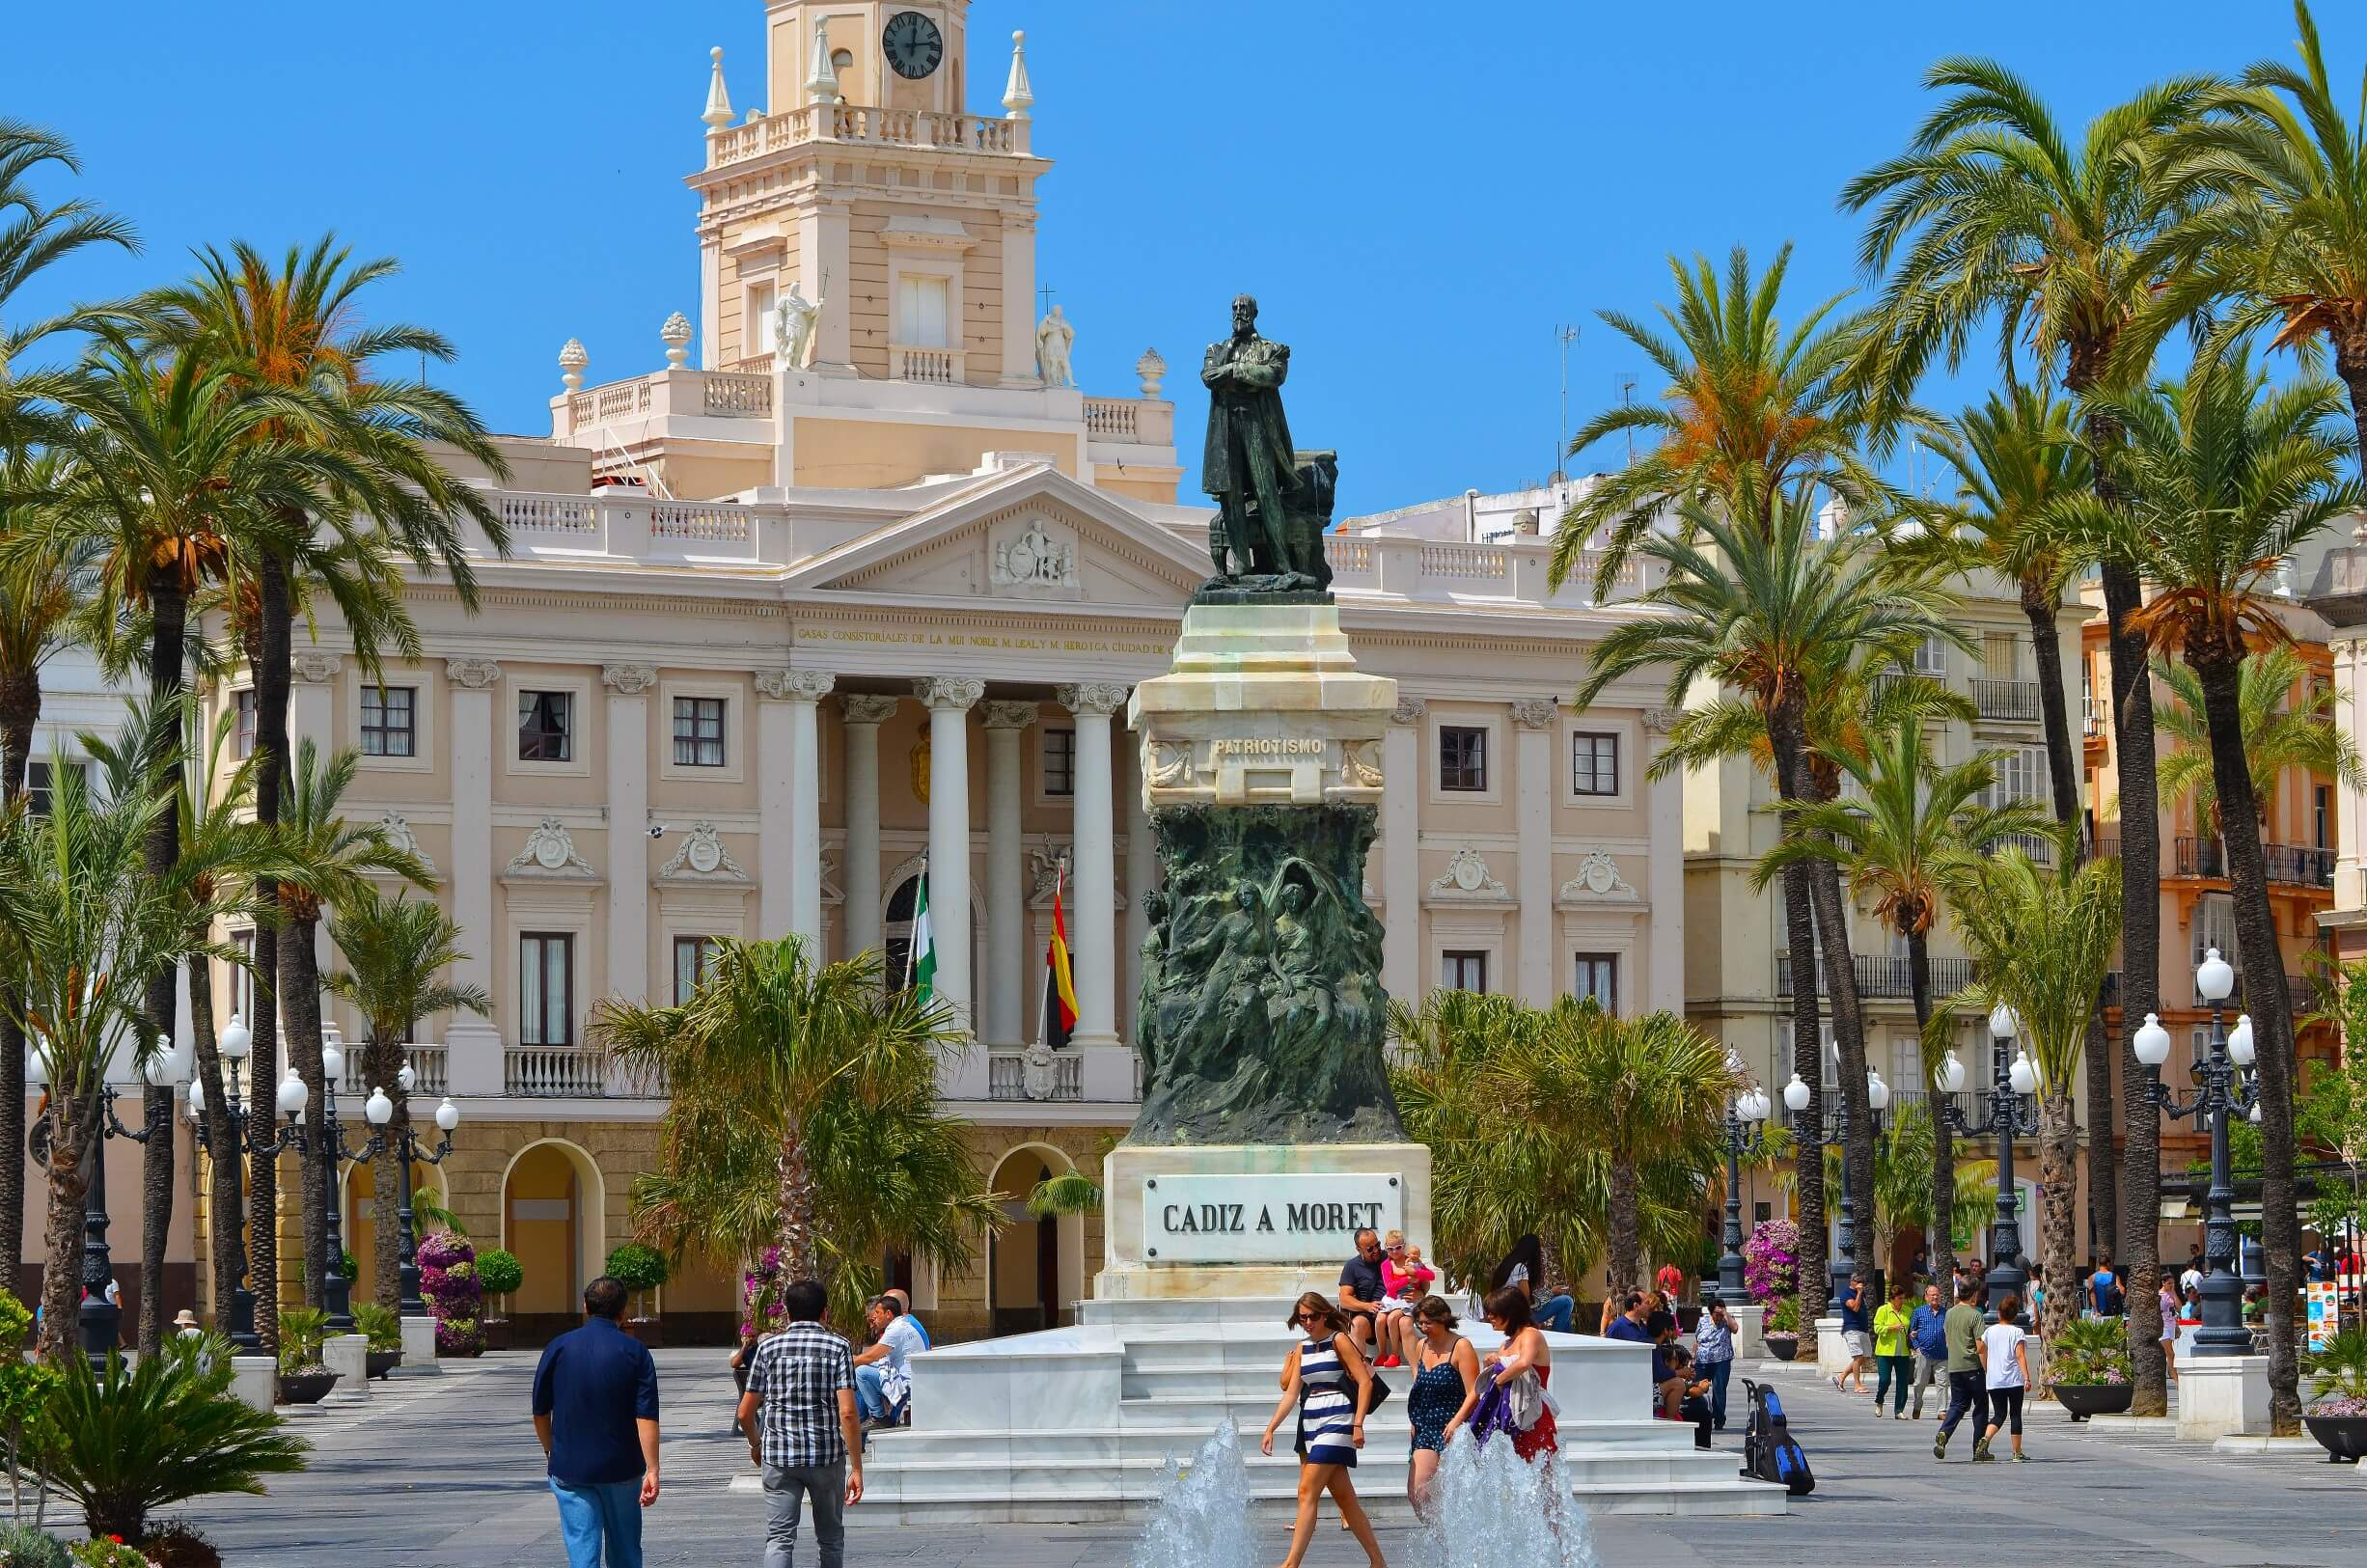 Andalusia is one of the most popular event destinations in Europe